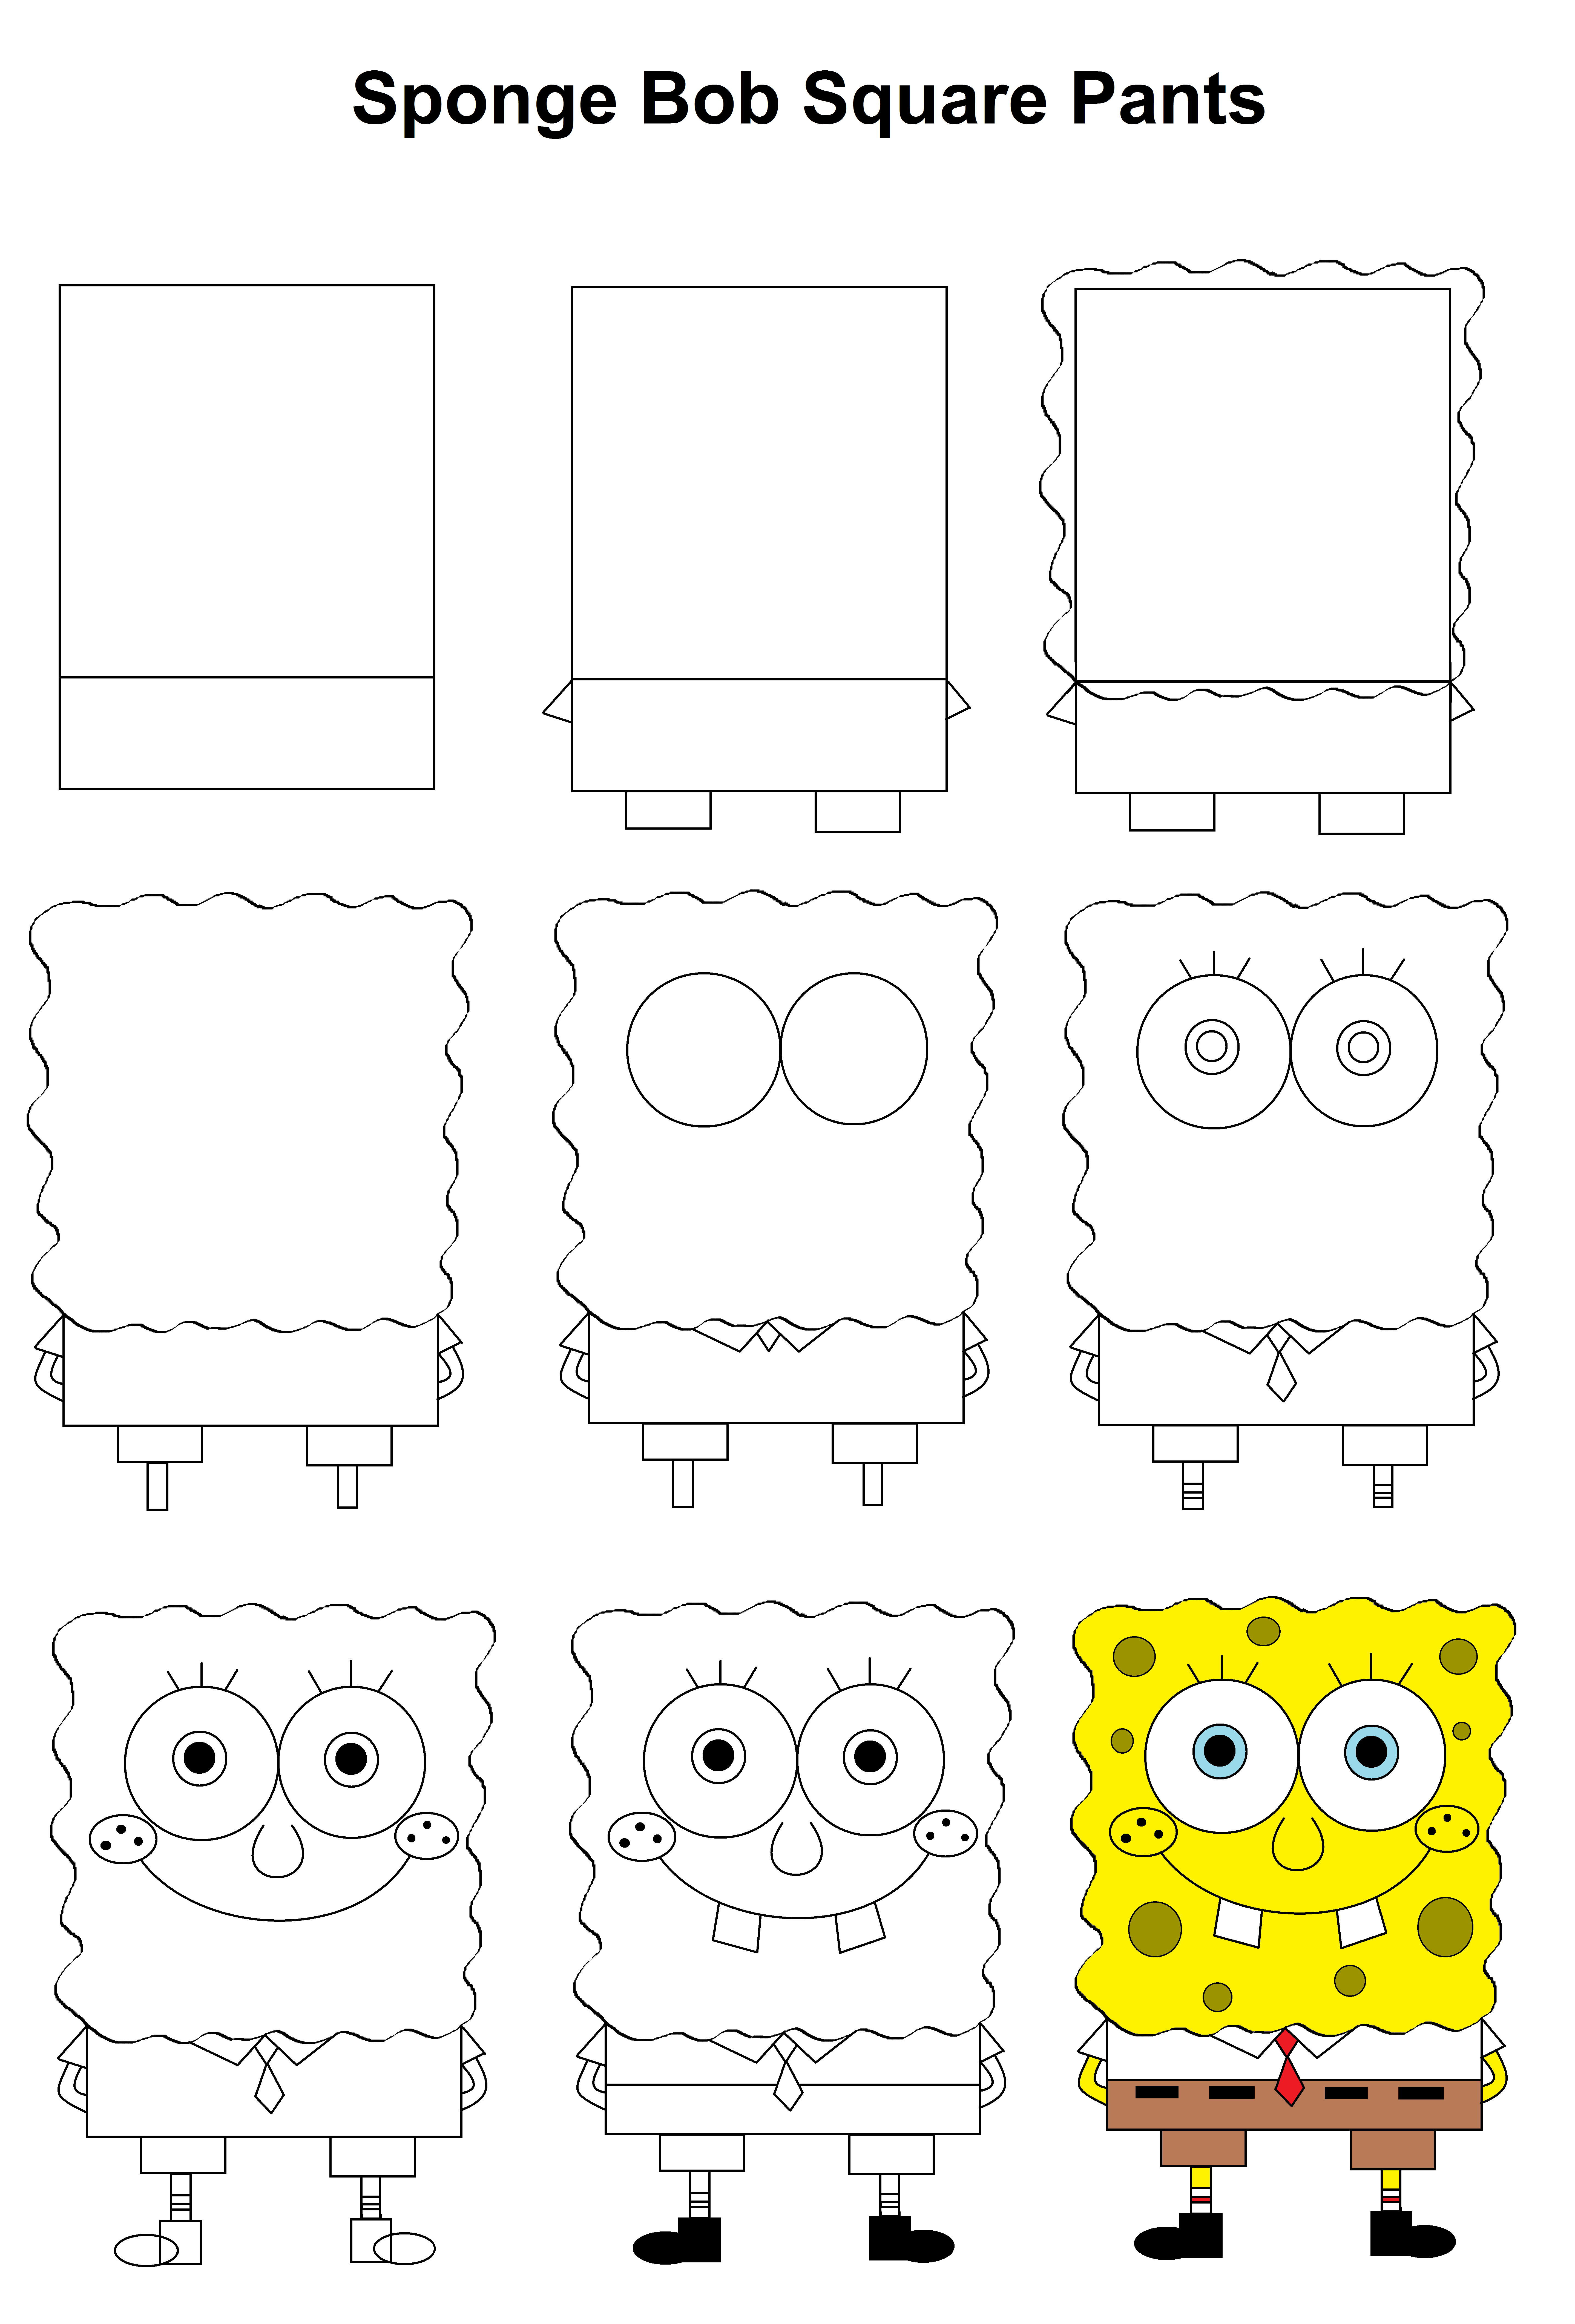 Spongebob Squarepants Step By Step Tutorial